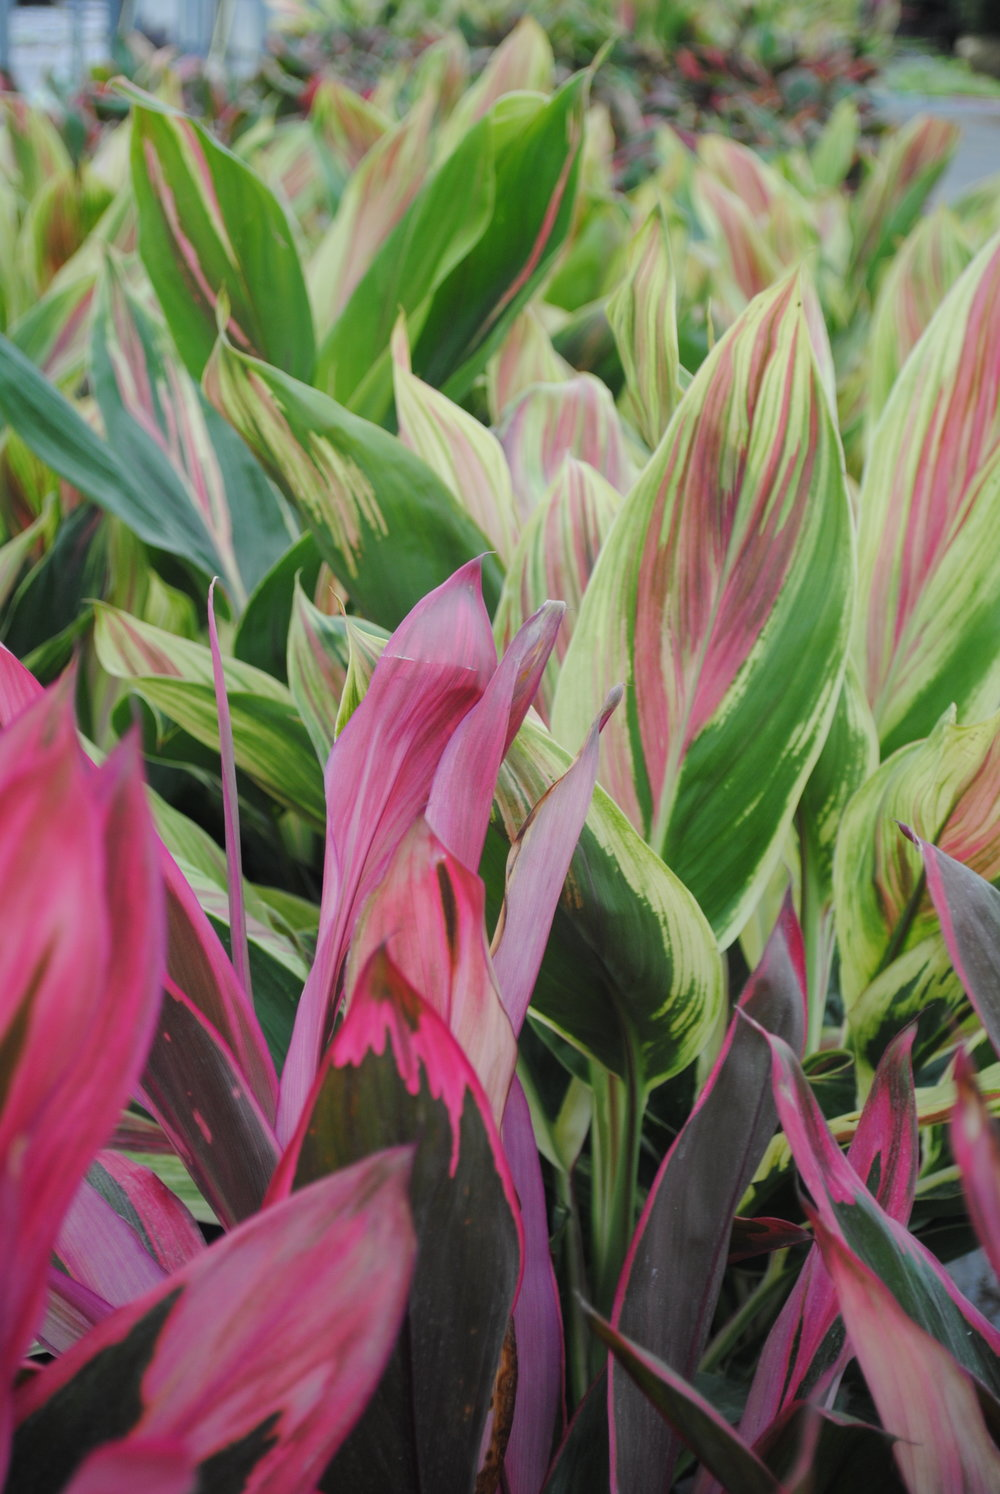 Cordyline is the perfect way to add lush, tropical color to your garden.